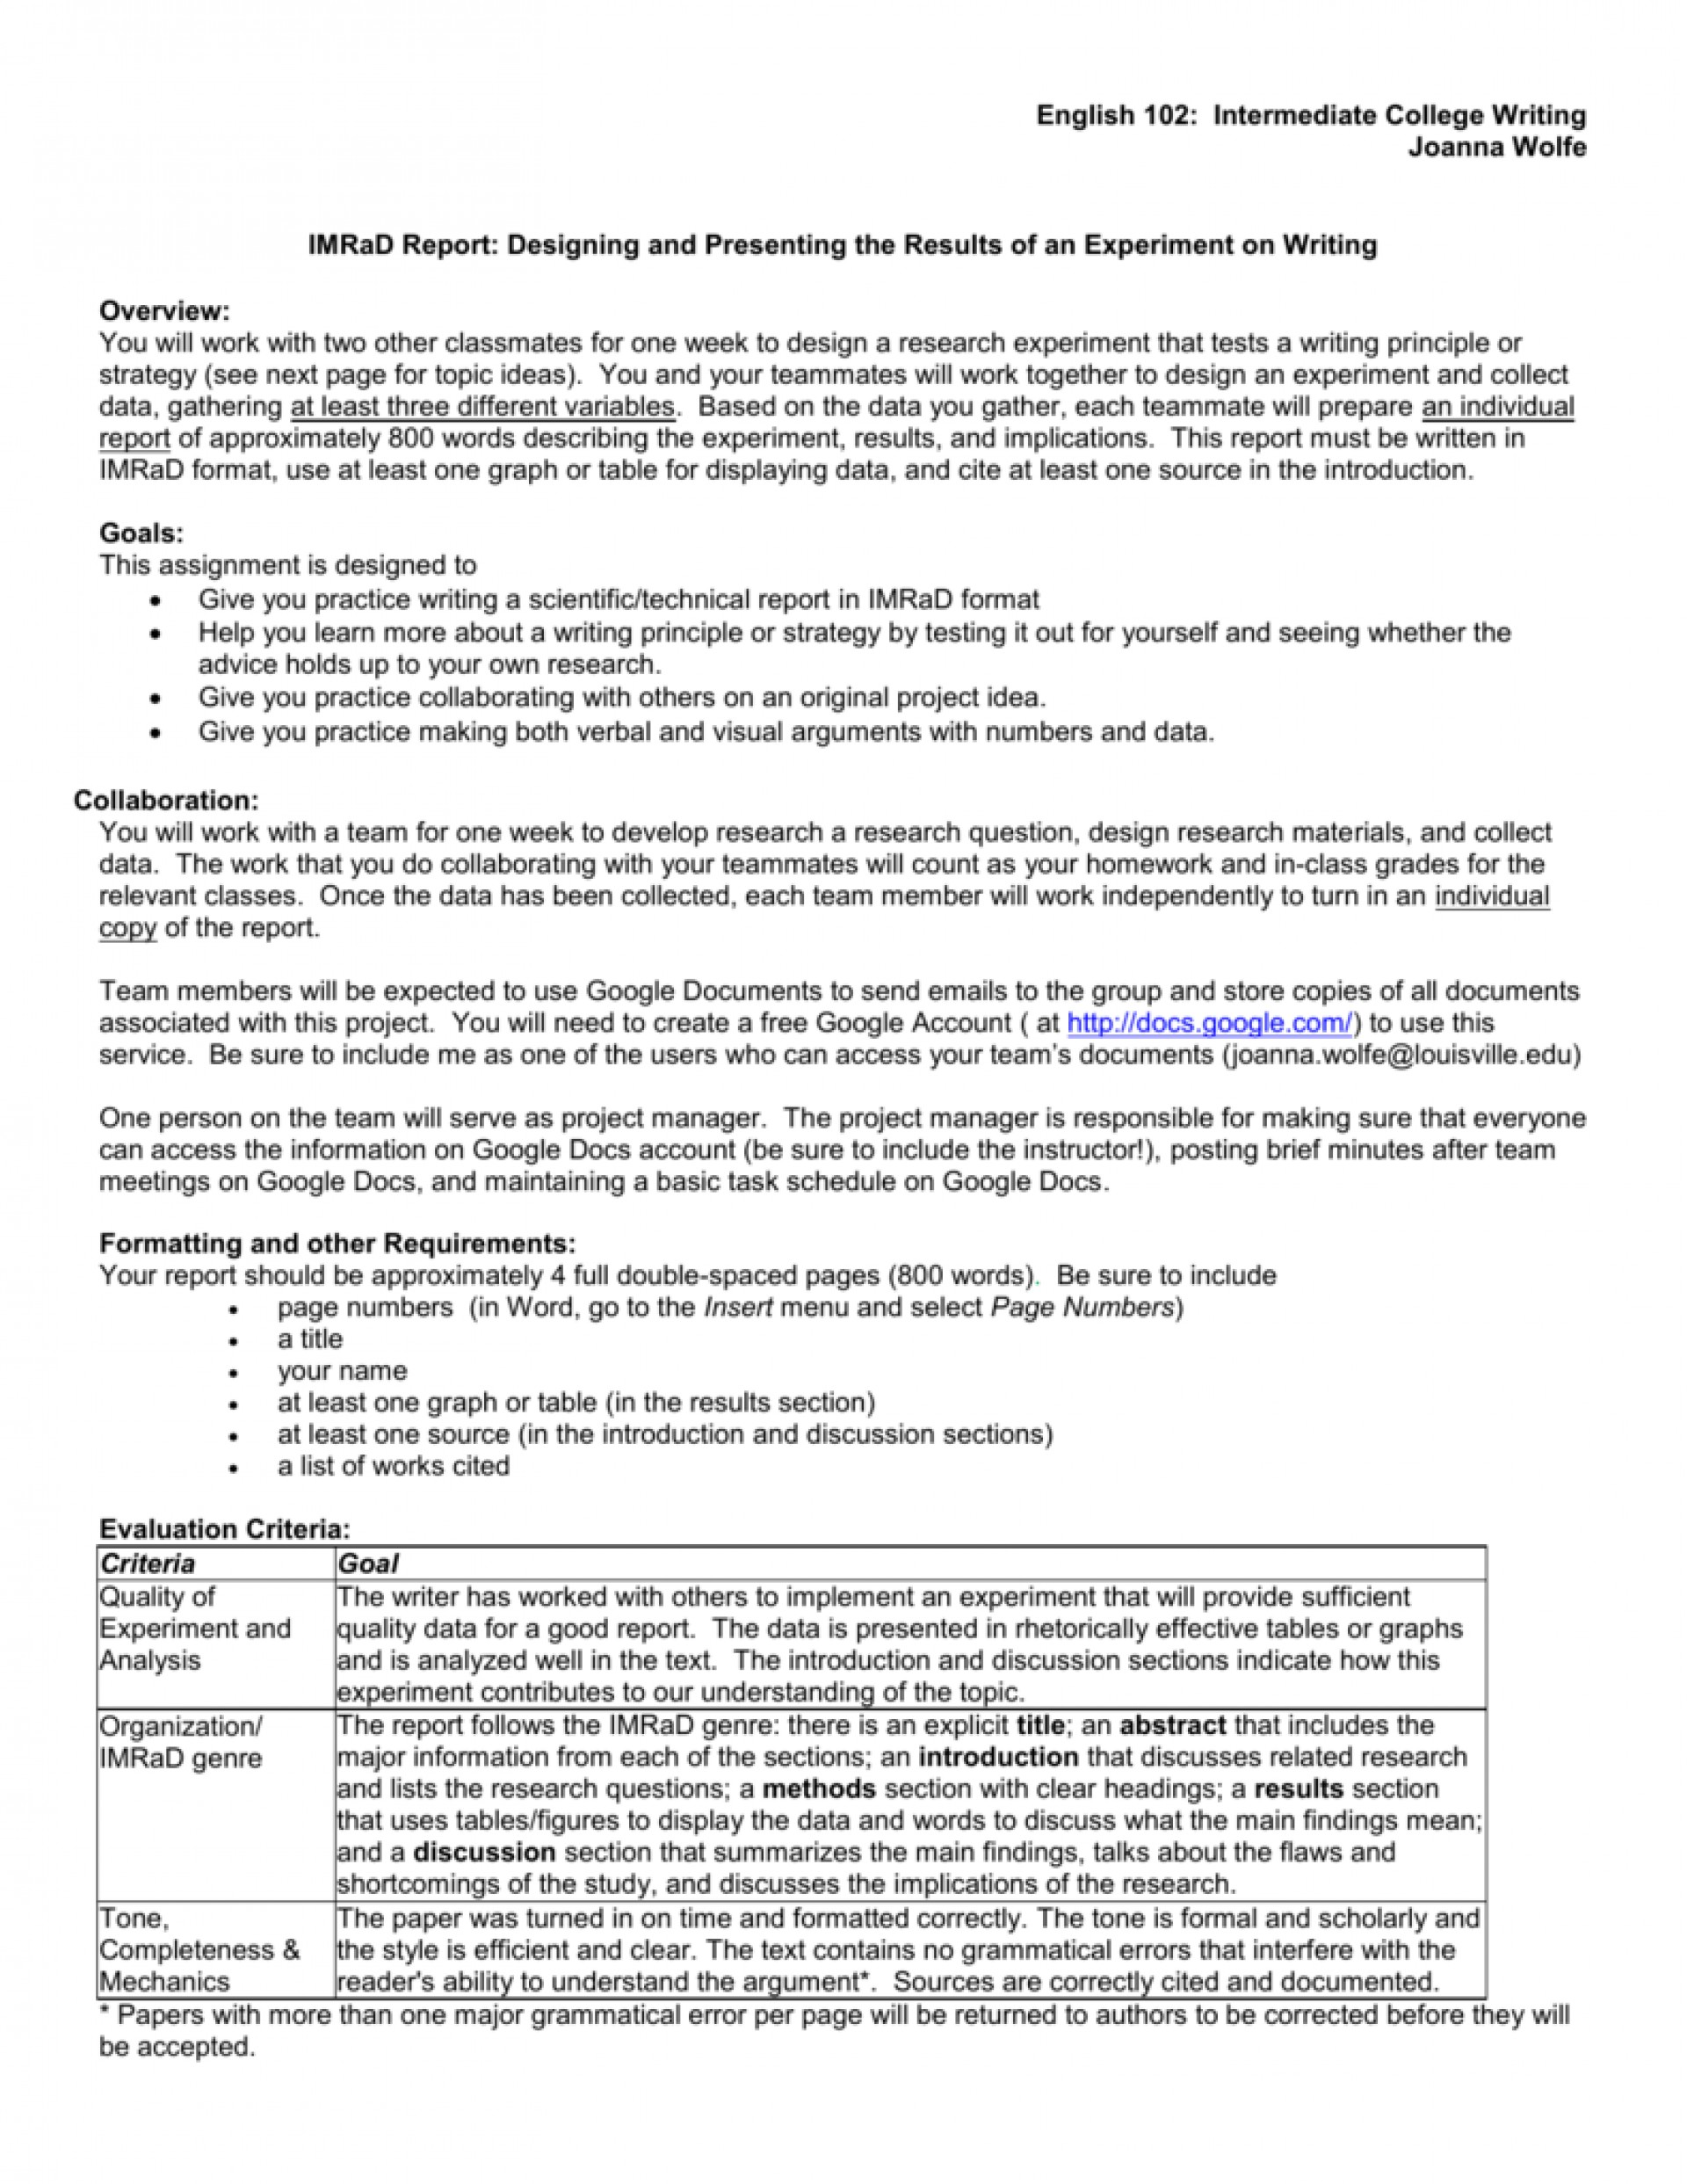 004 Essay Example 008942553 1 Essays Online To Remarkable Read Free Best 1920